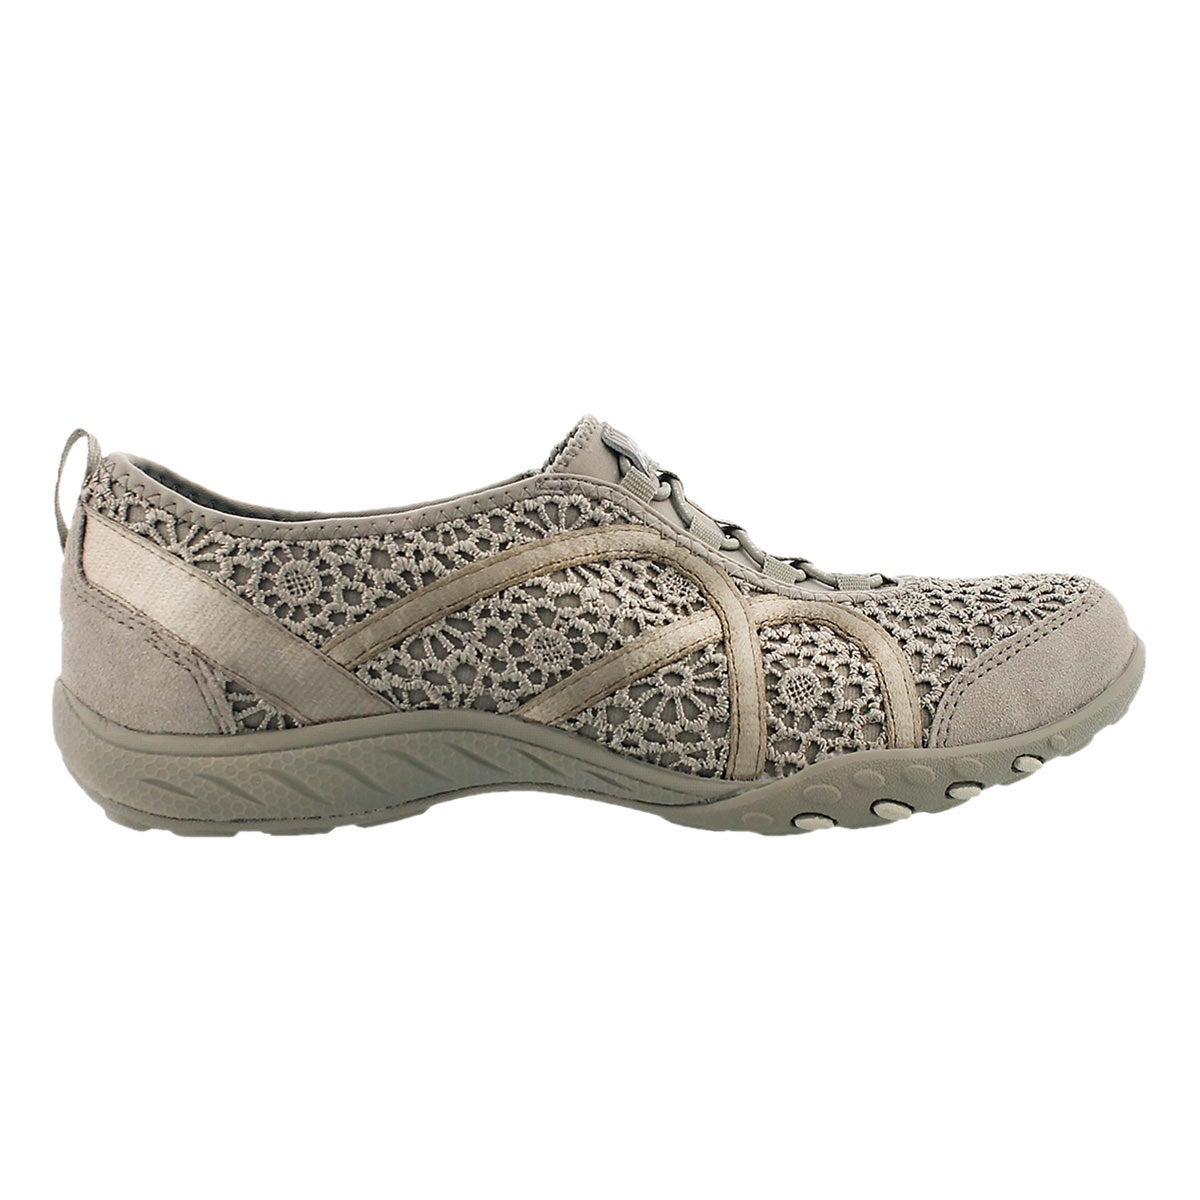 Lds Meadows taupe crochet bungee sneaker